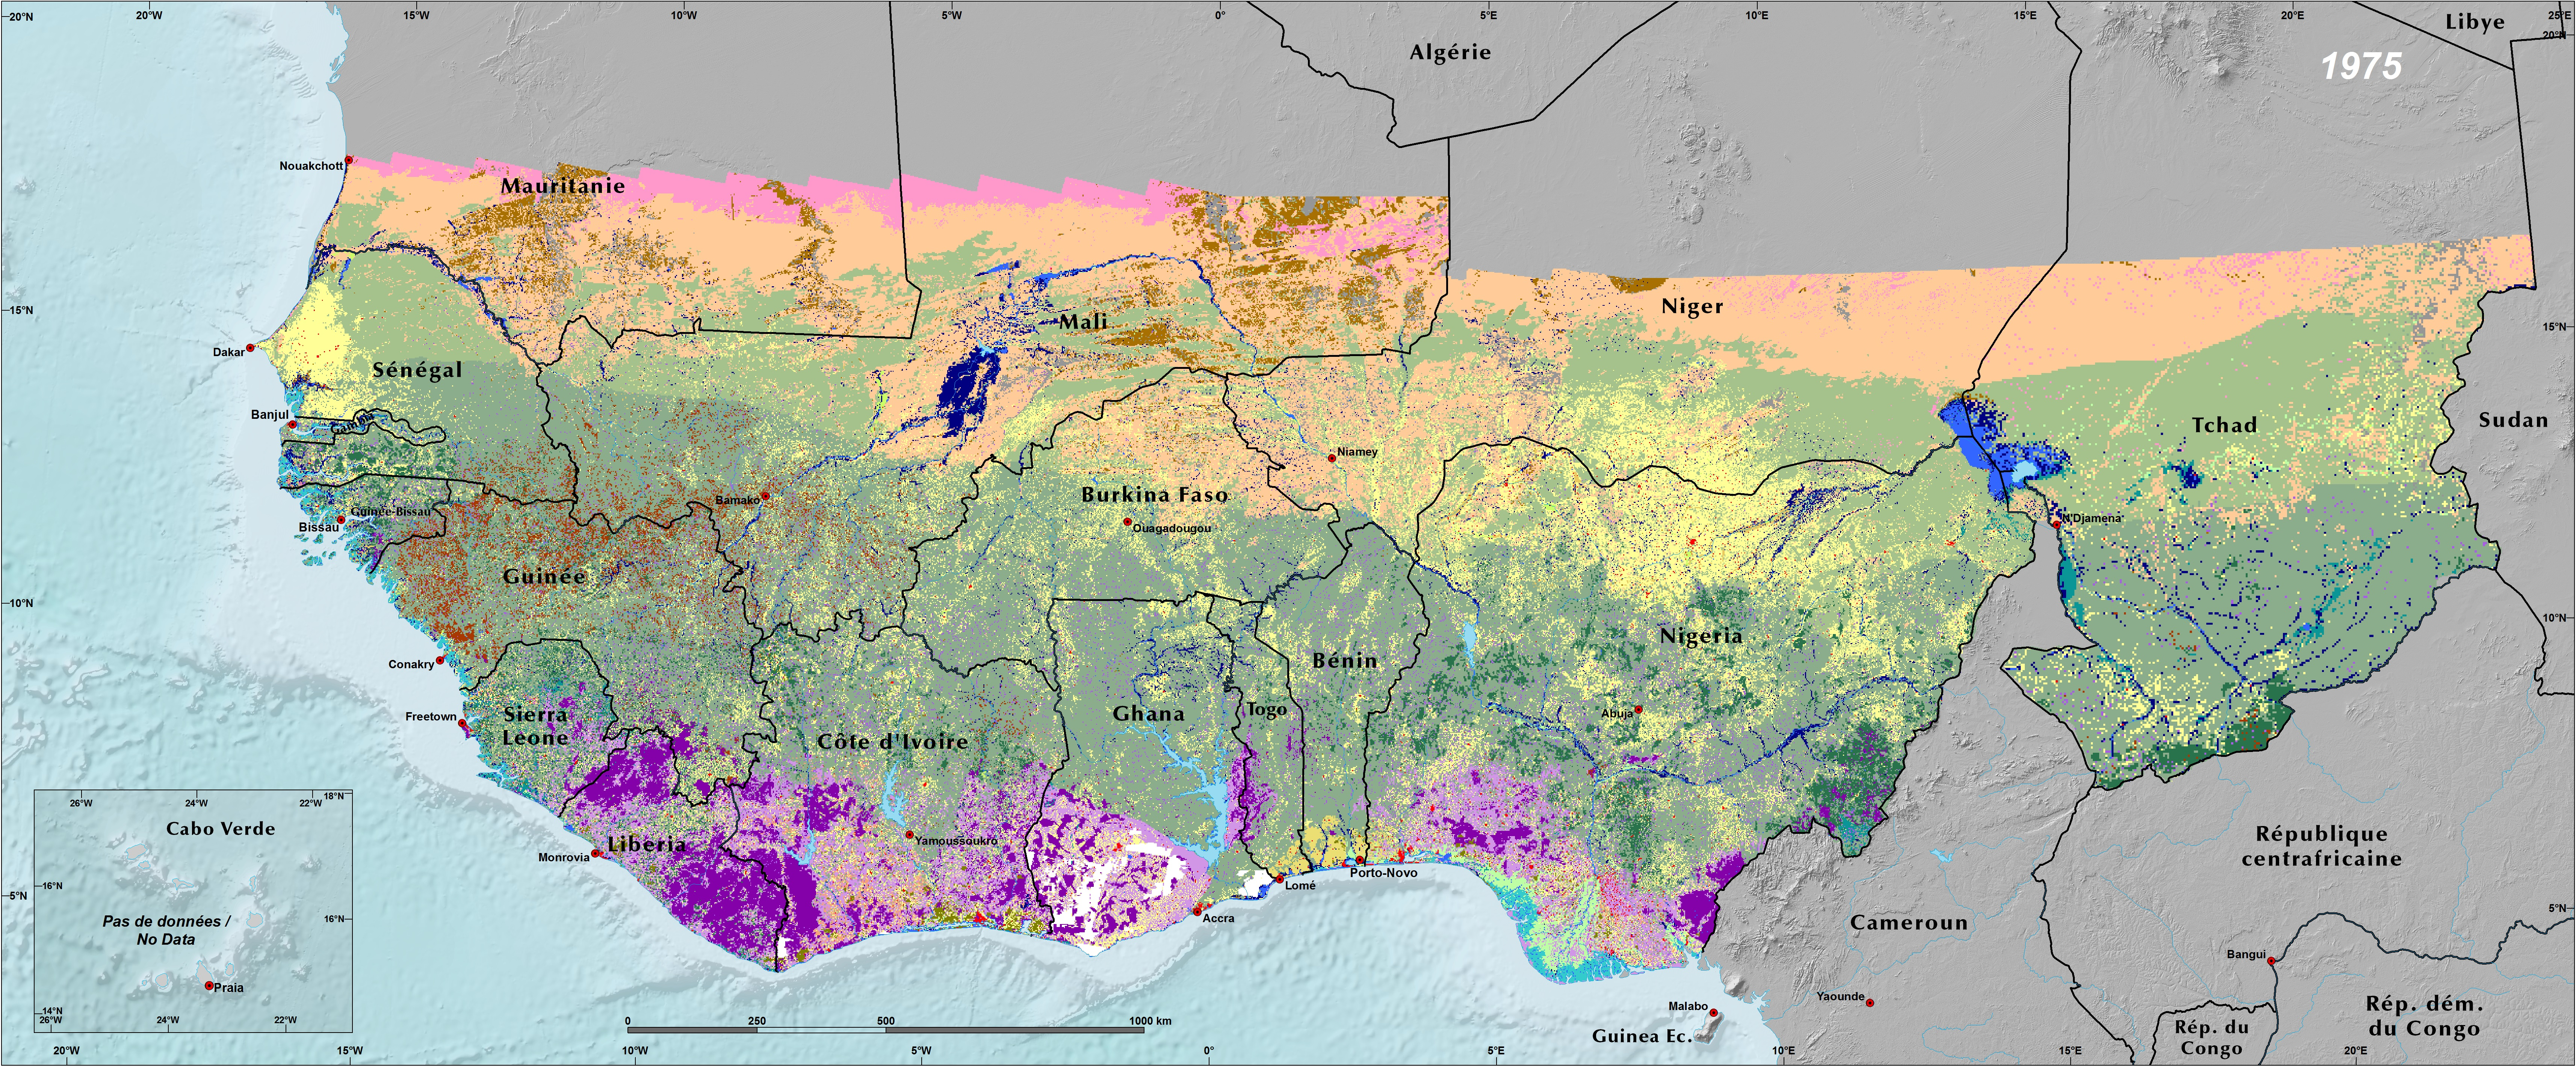 Land Use and Land Cover Trends in West Africa West Africa